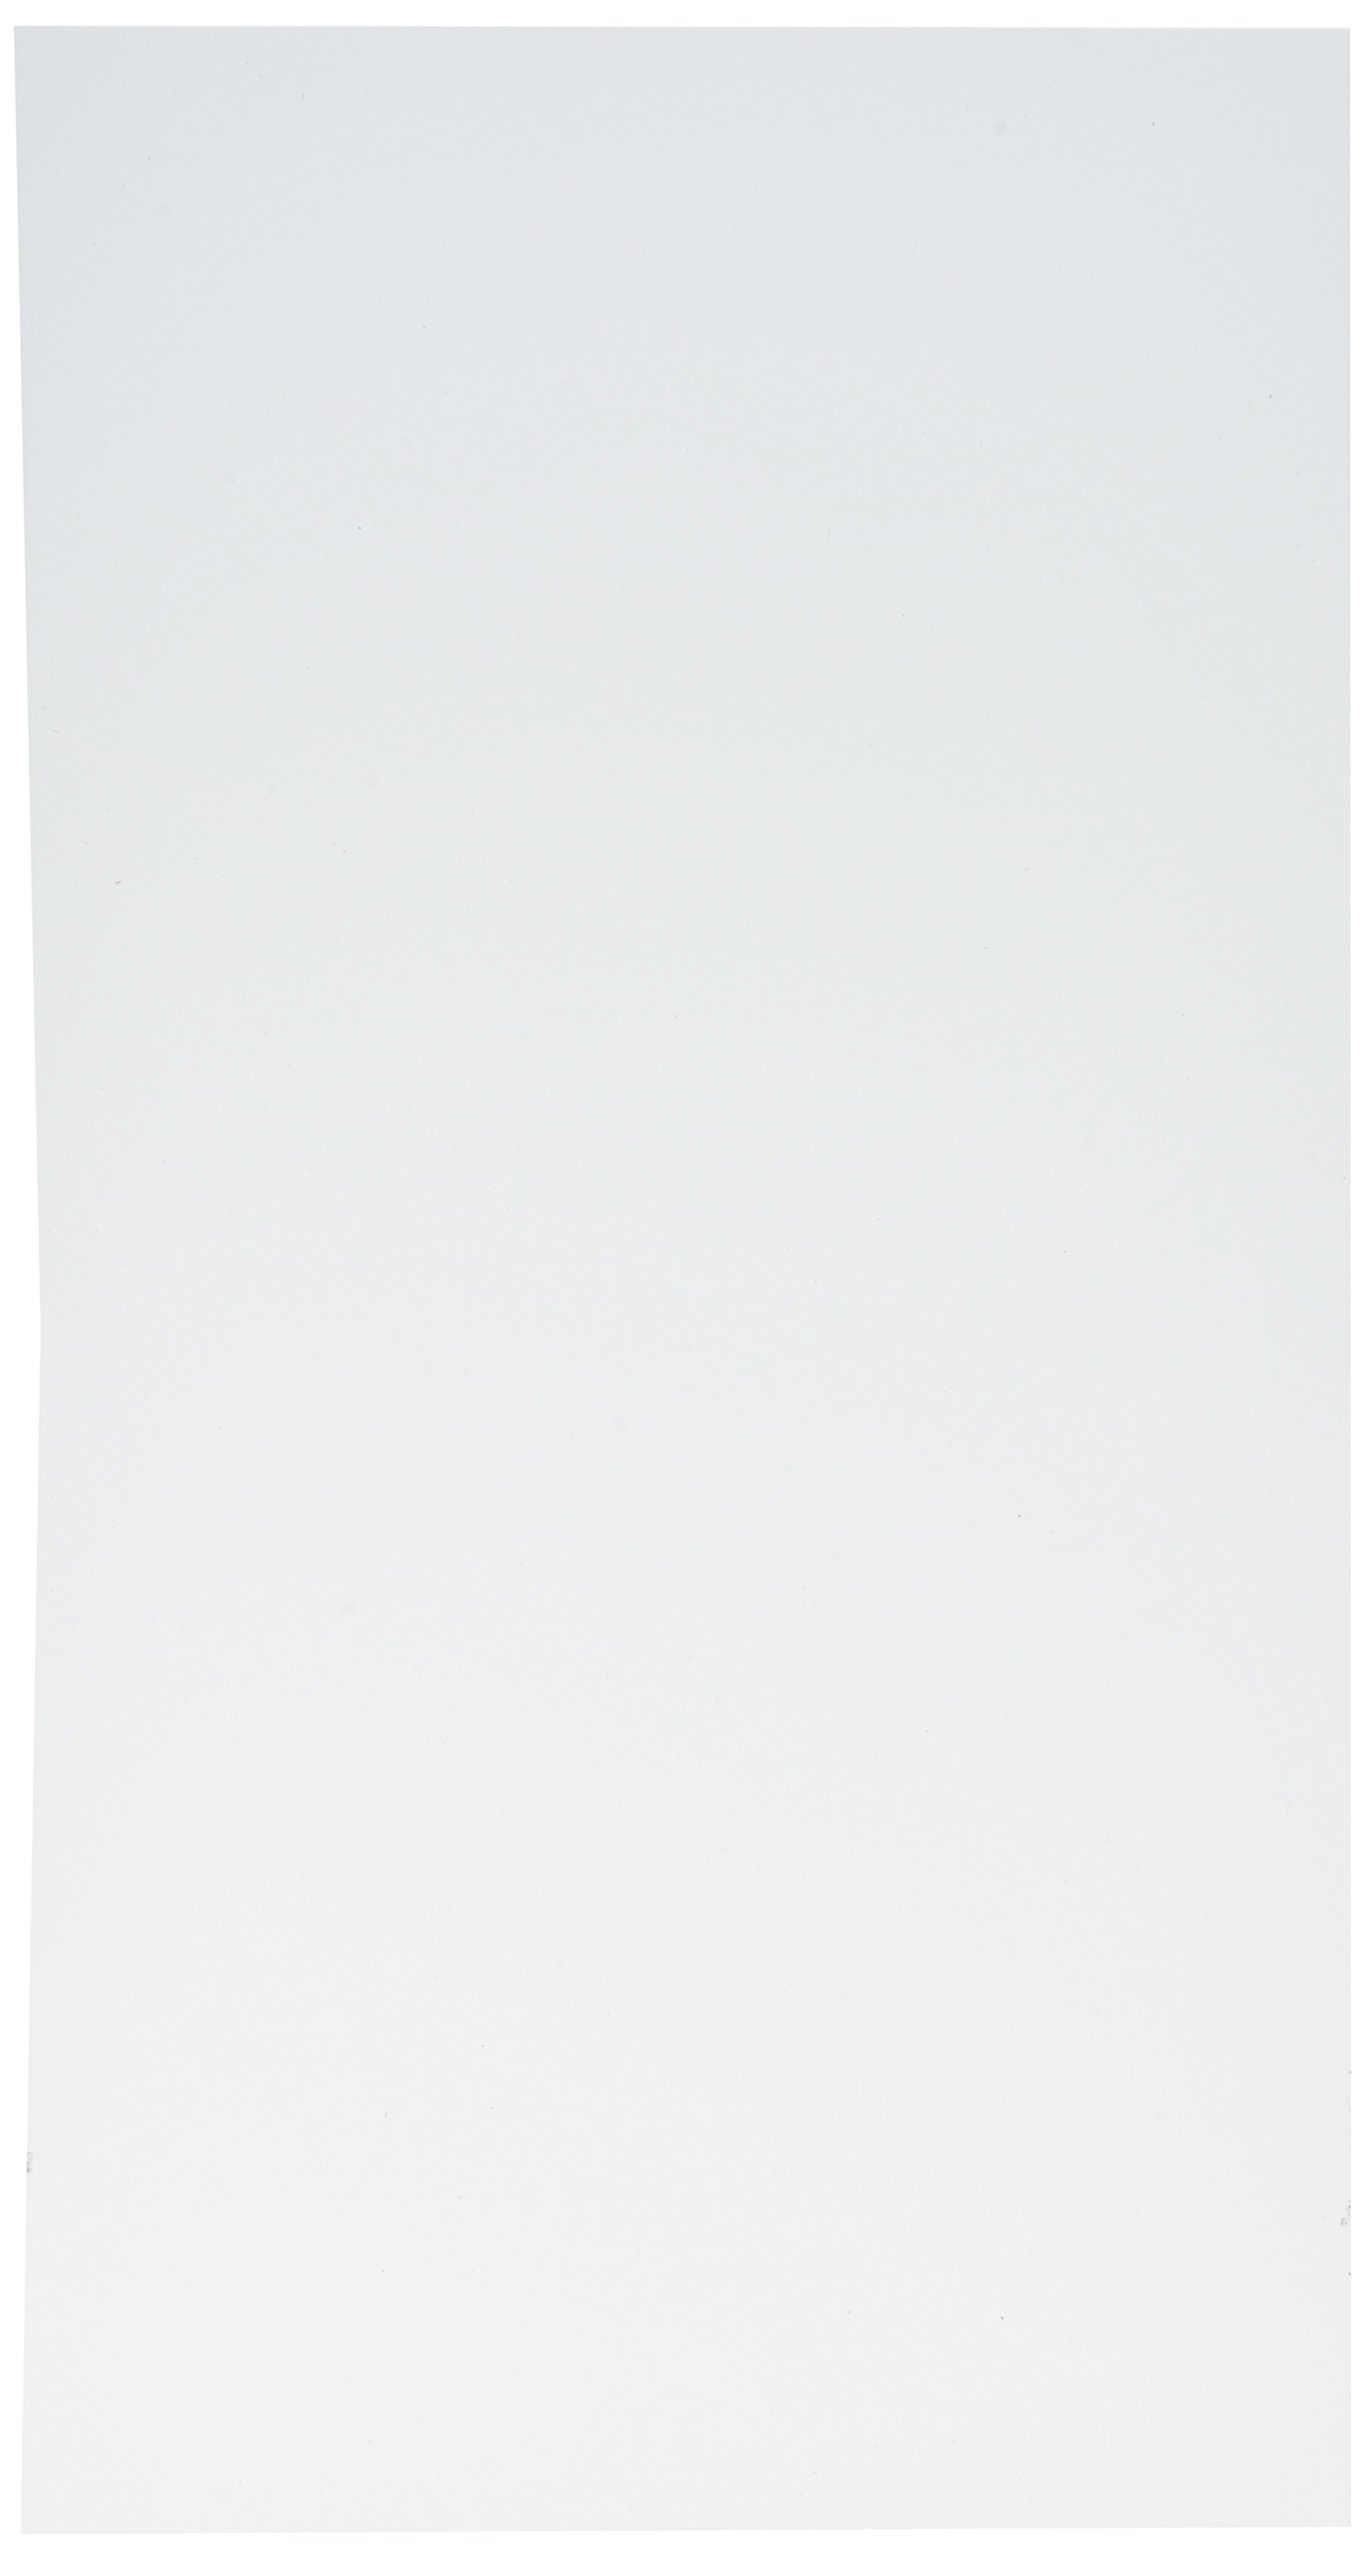 Frost King Magnetic Vent Covers, 8''x15'' 3-Pack, White by Frost King